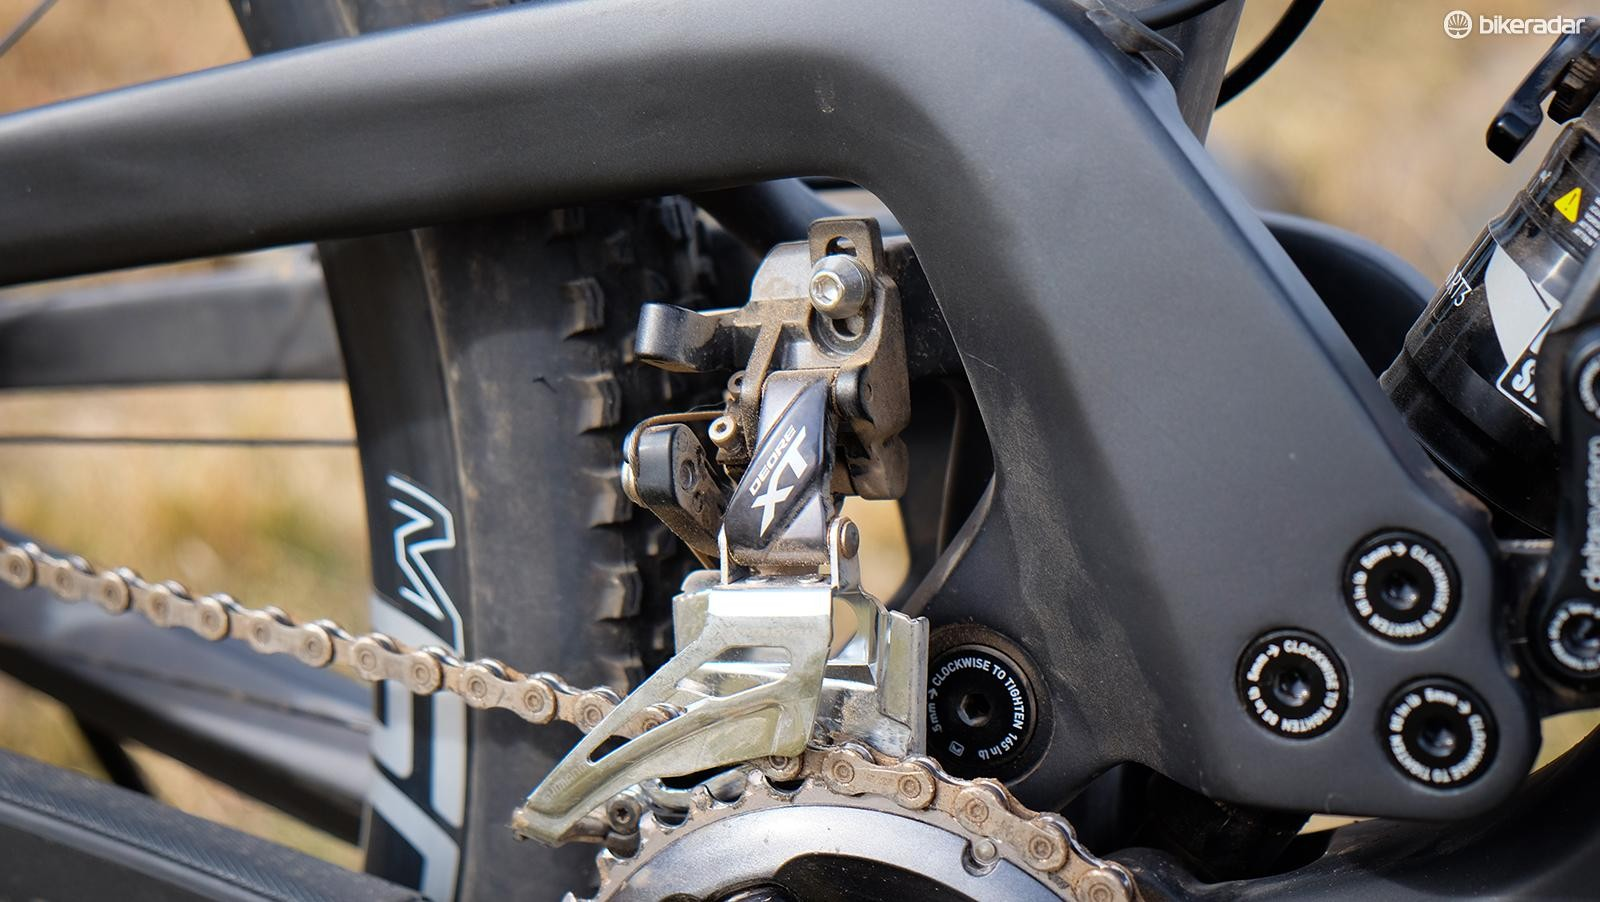 Mountain bike front derailleurs are still relevant as far as Shimano is concerned